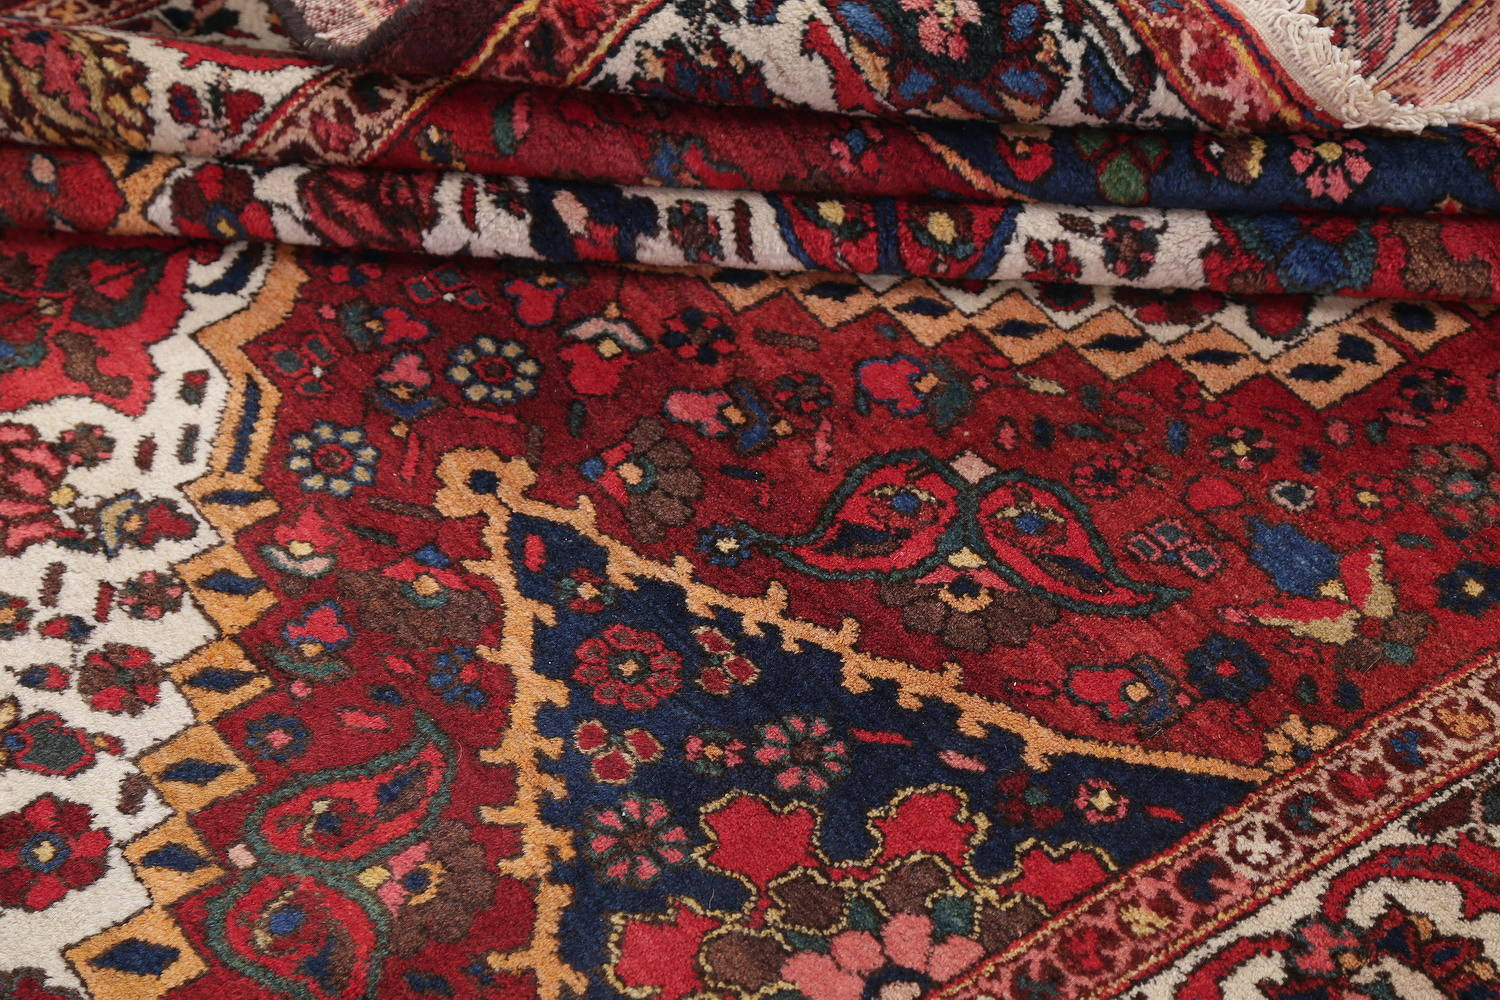 Antique Floral Red Bakhtiari Persian Hand-Knotted Area Rug Wool 7x10